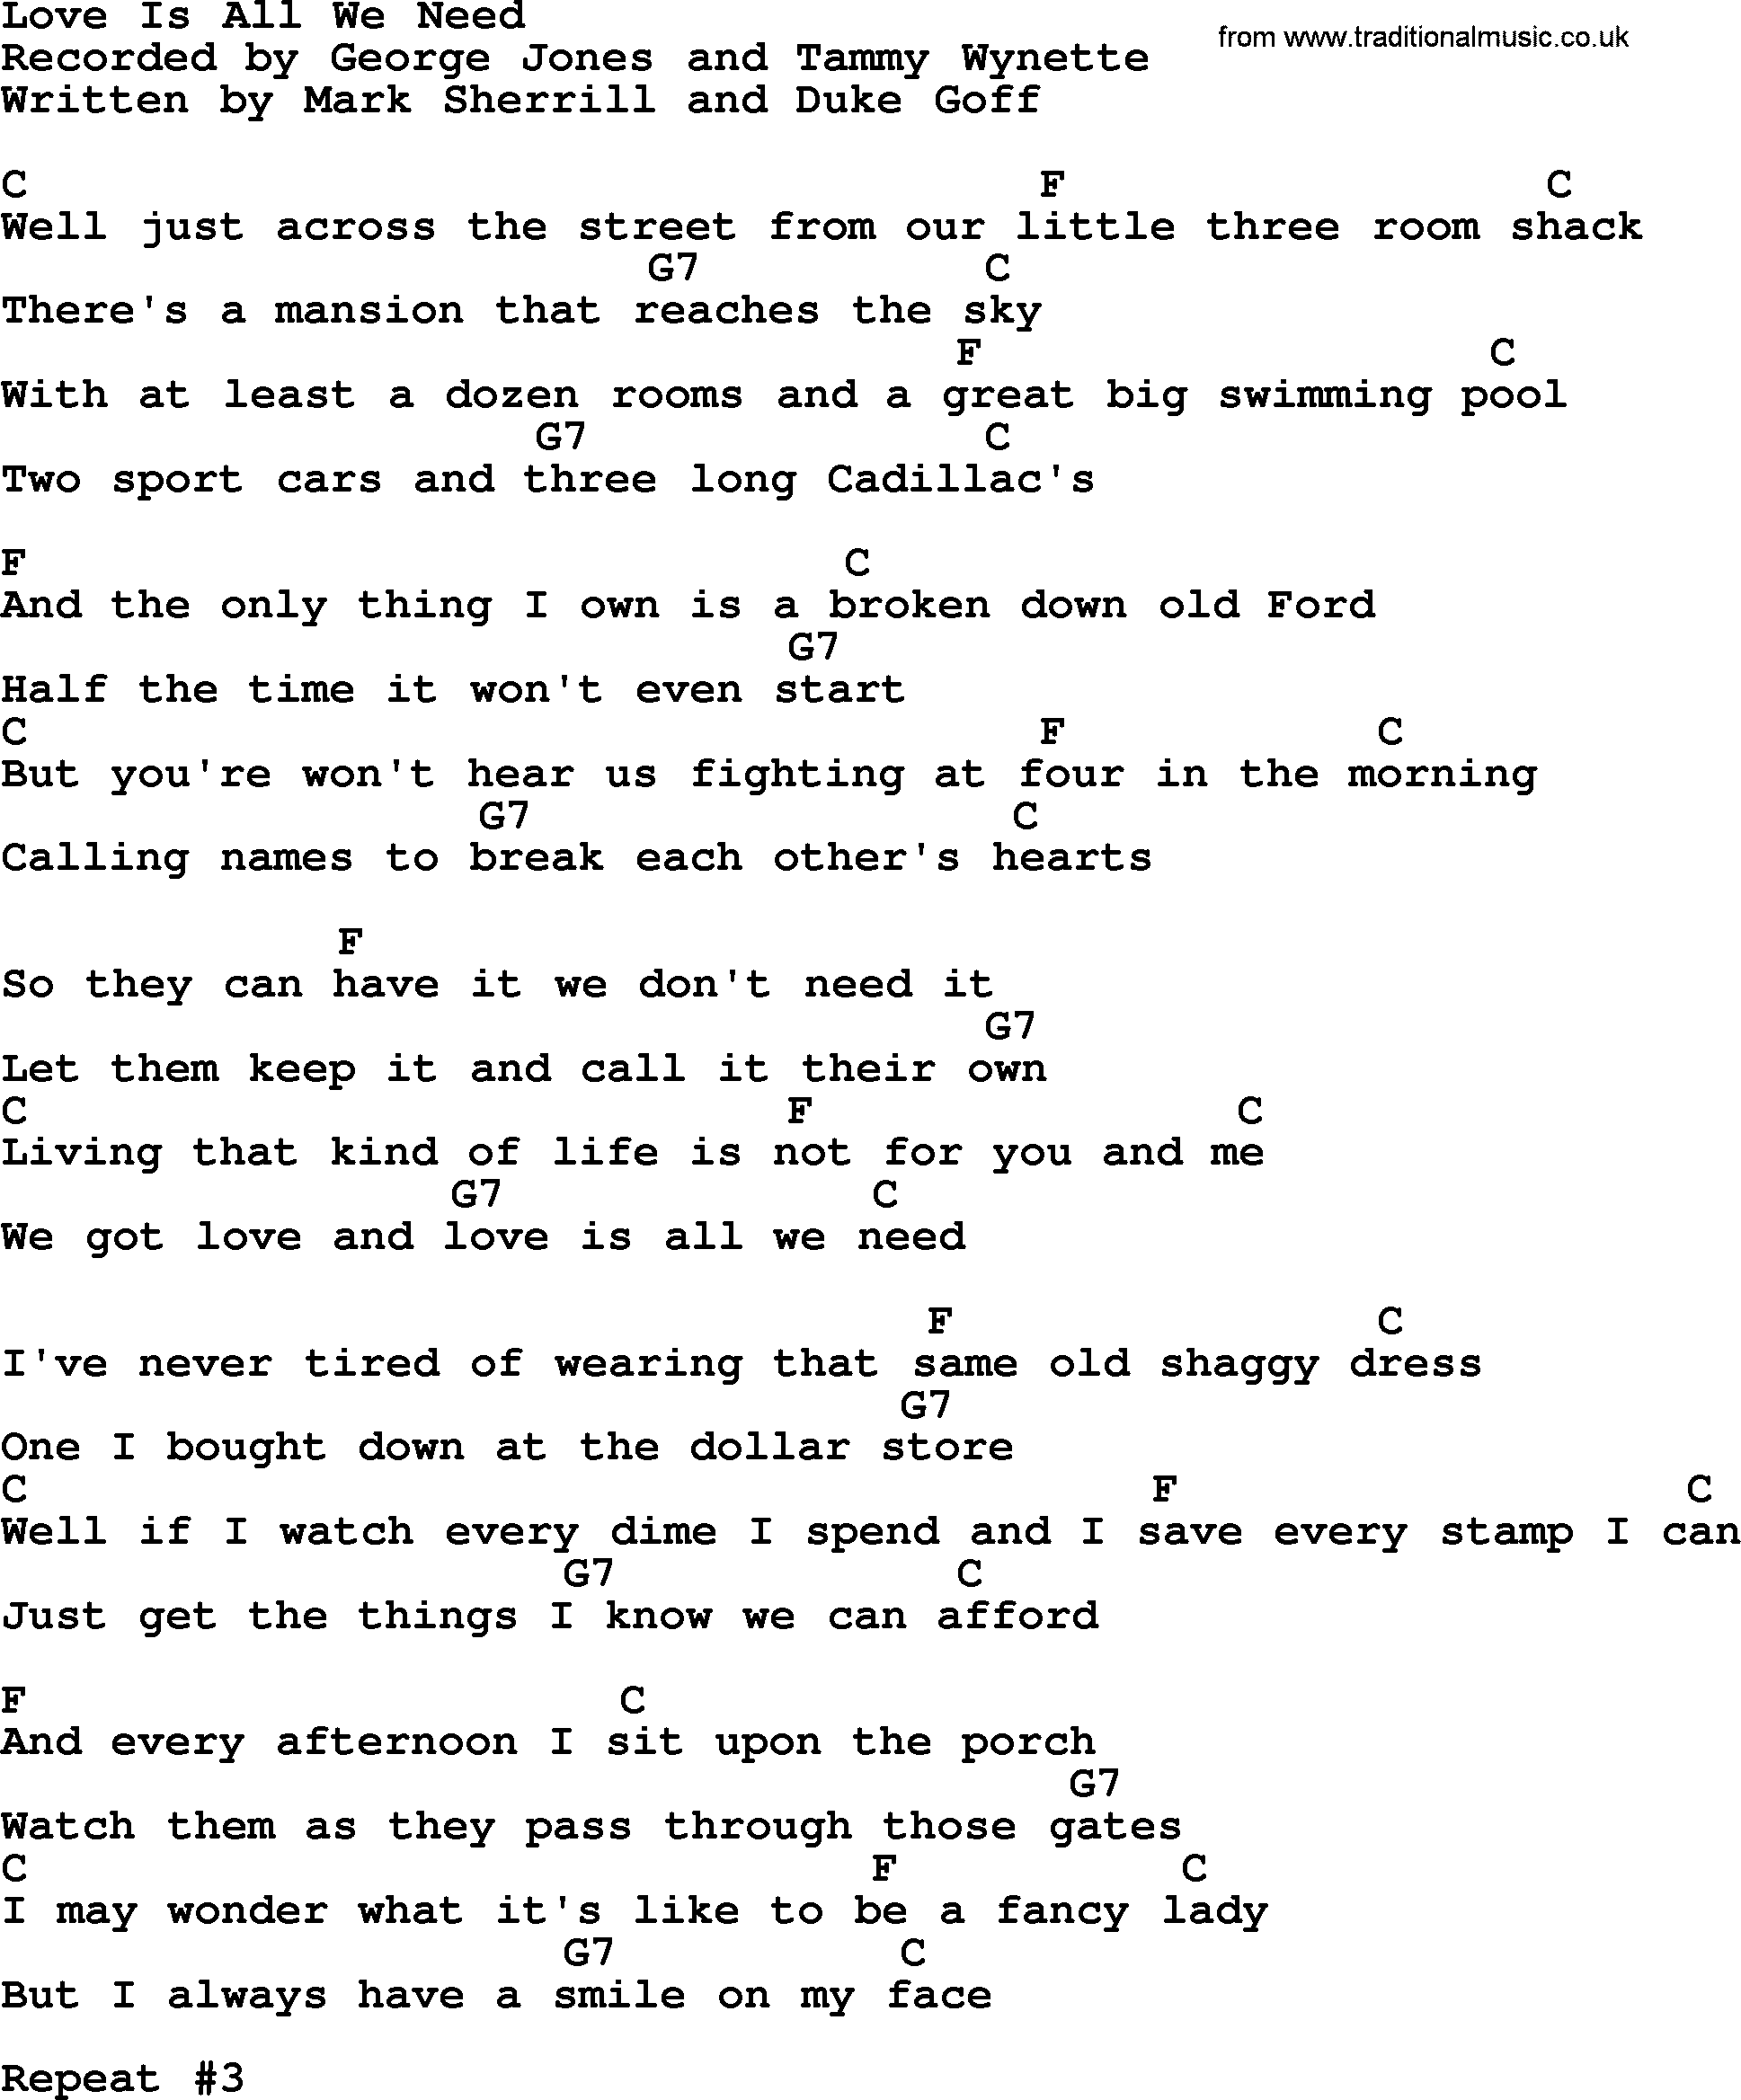 Love Is All We Need by George Jones   Counrty song lyrics and chords